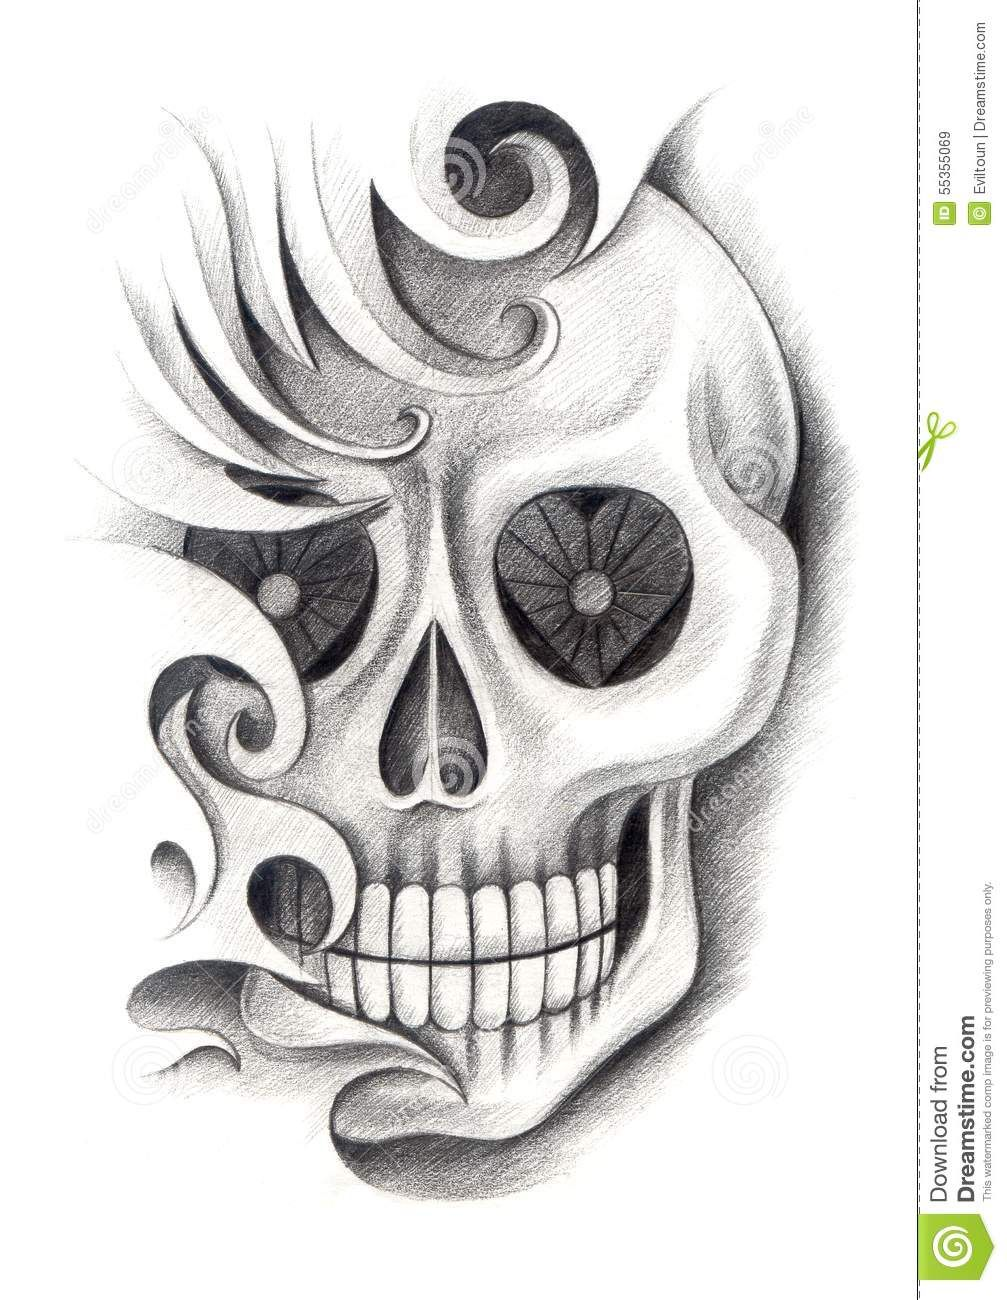 Skull art tattoo design head mix tribal hand pencil for Drawing tattoos on paper